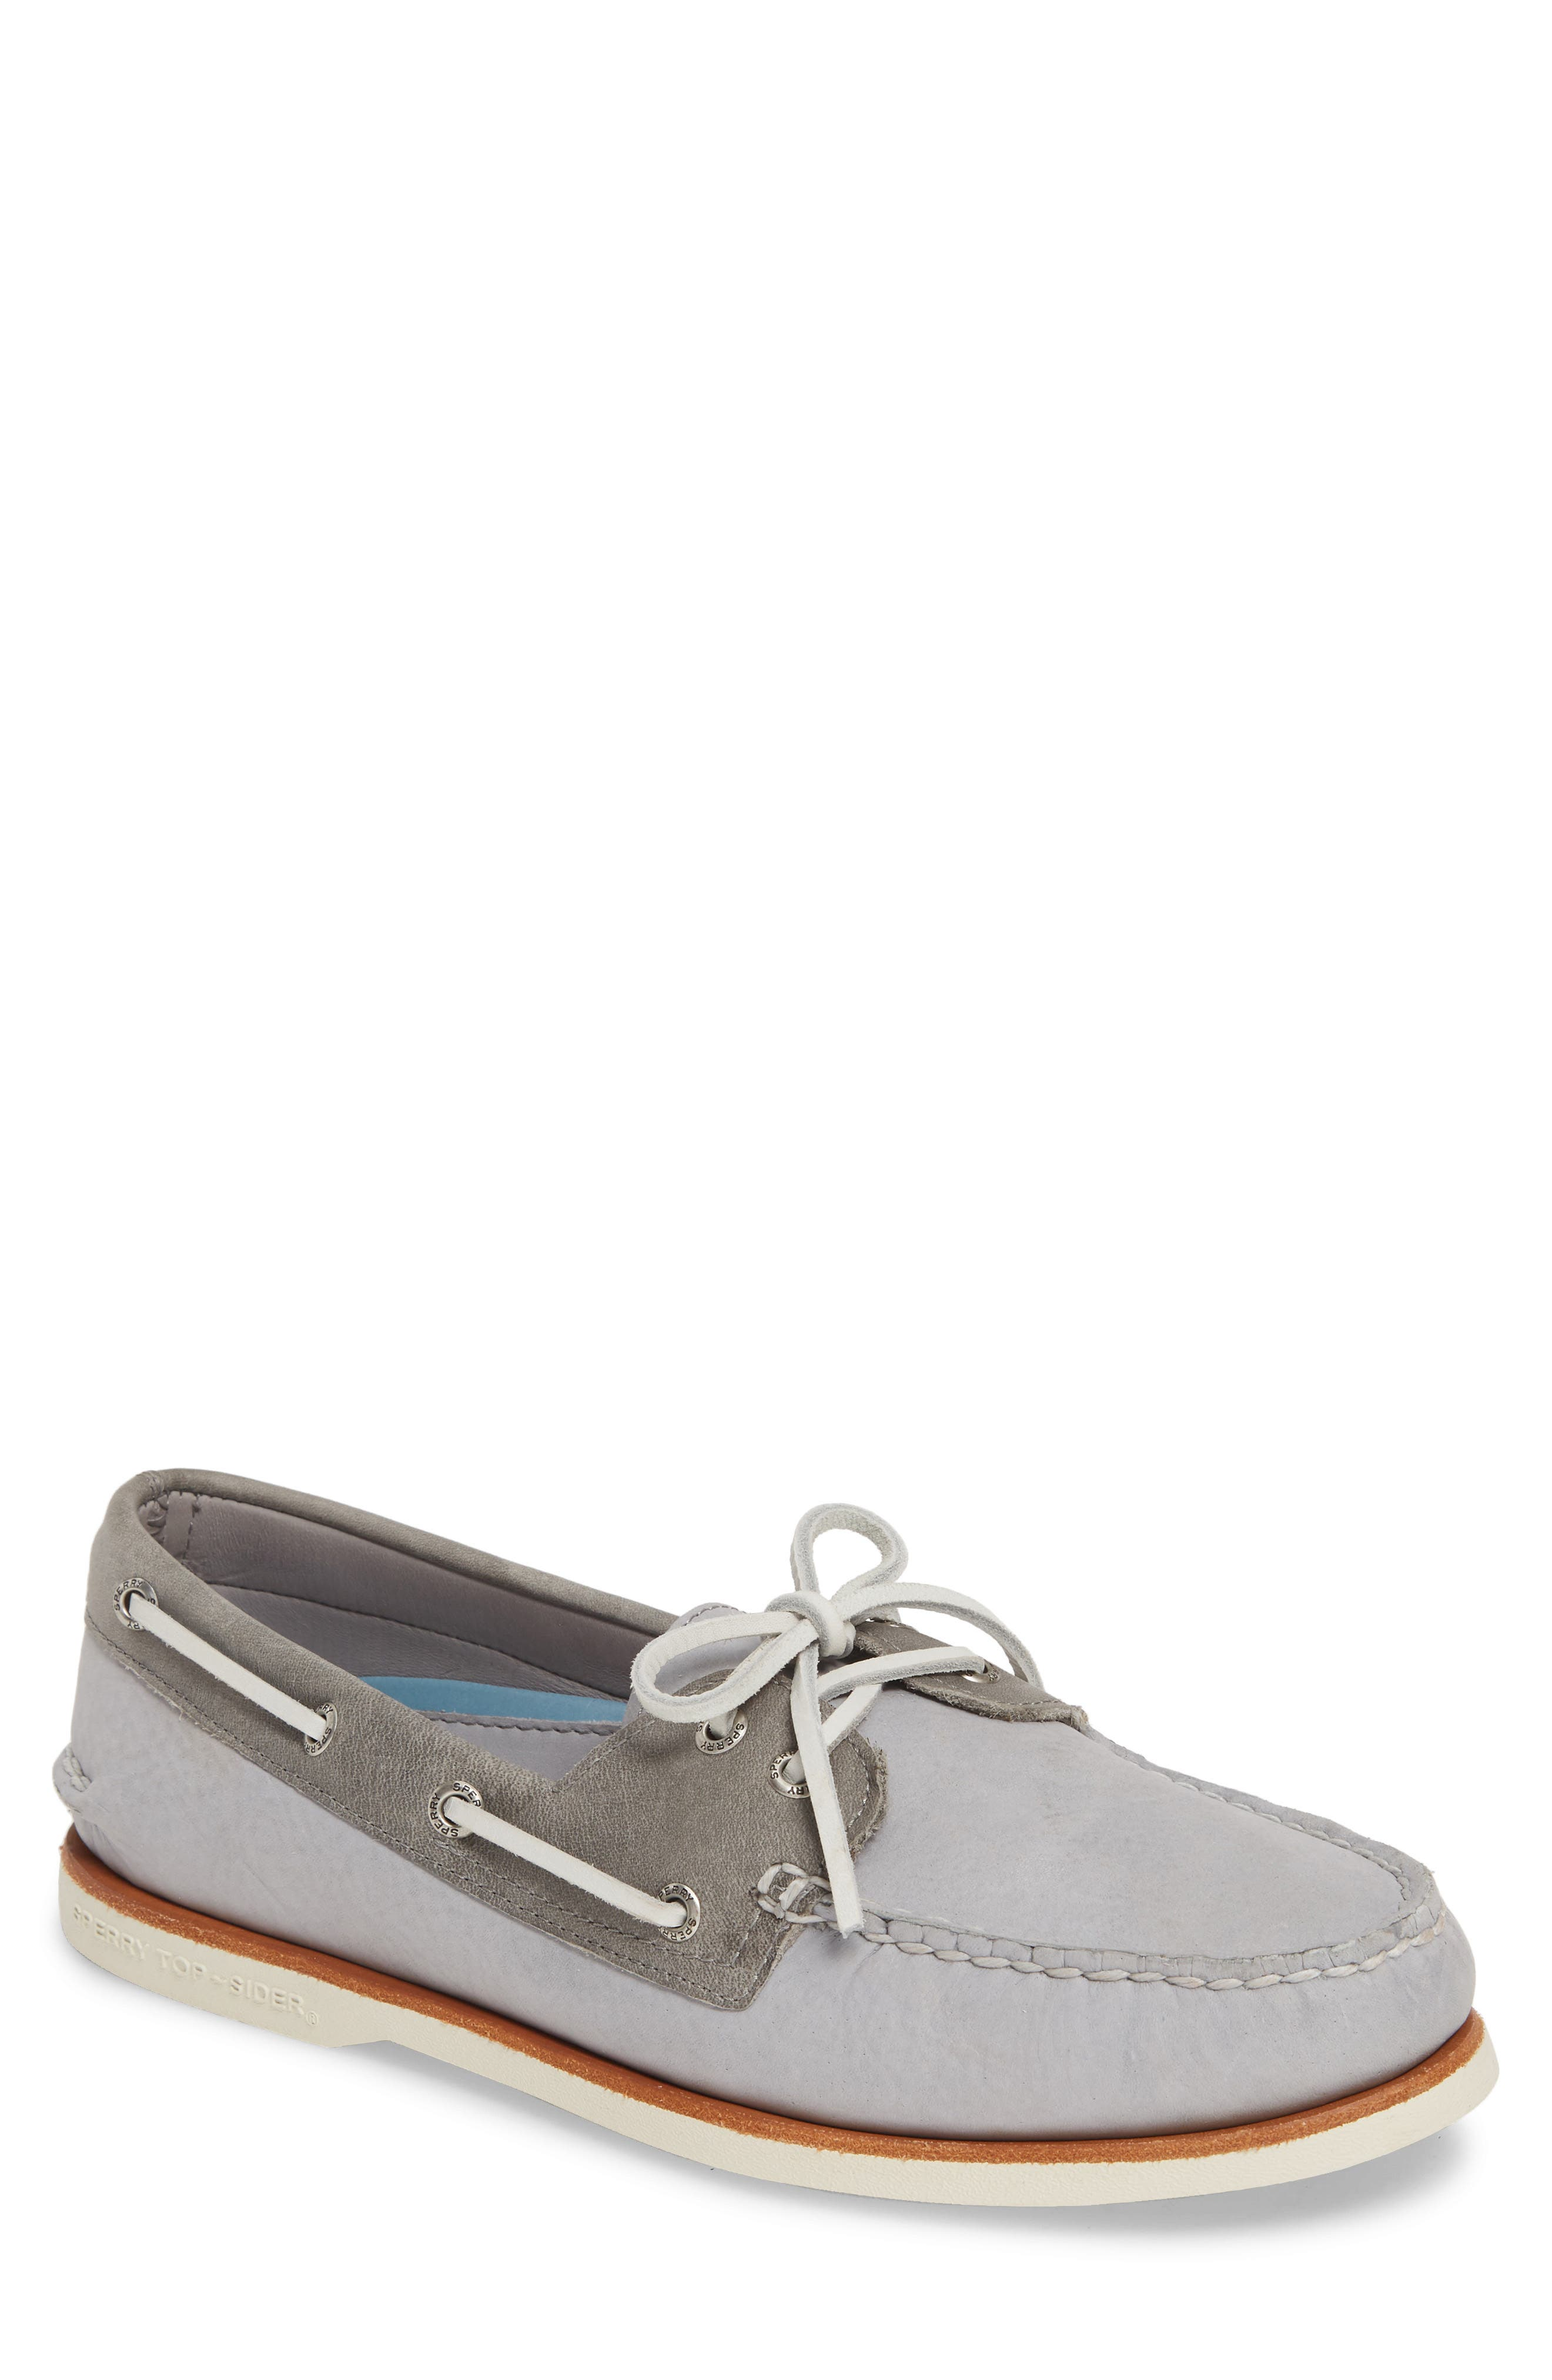 SPERRY, 'Gold Cup - Authentic Original' Boat Shoe, Main thumbnail 1, color, GREY/GREY LEATHER